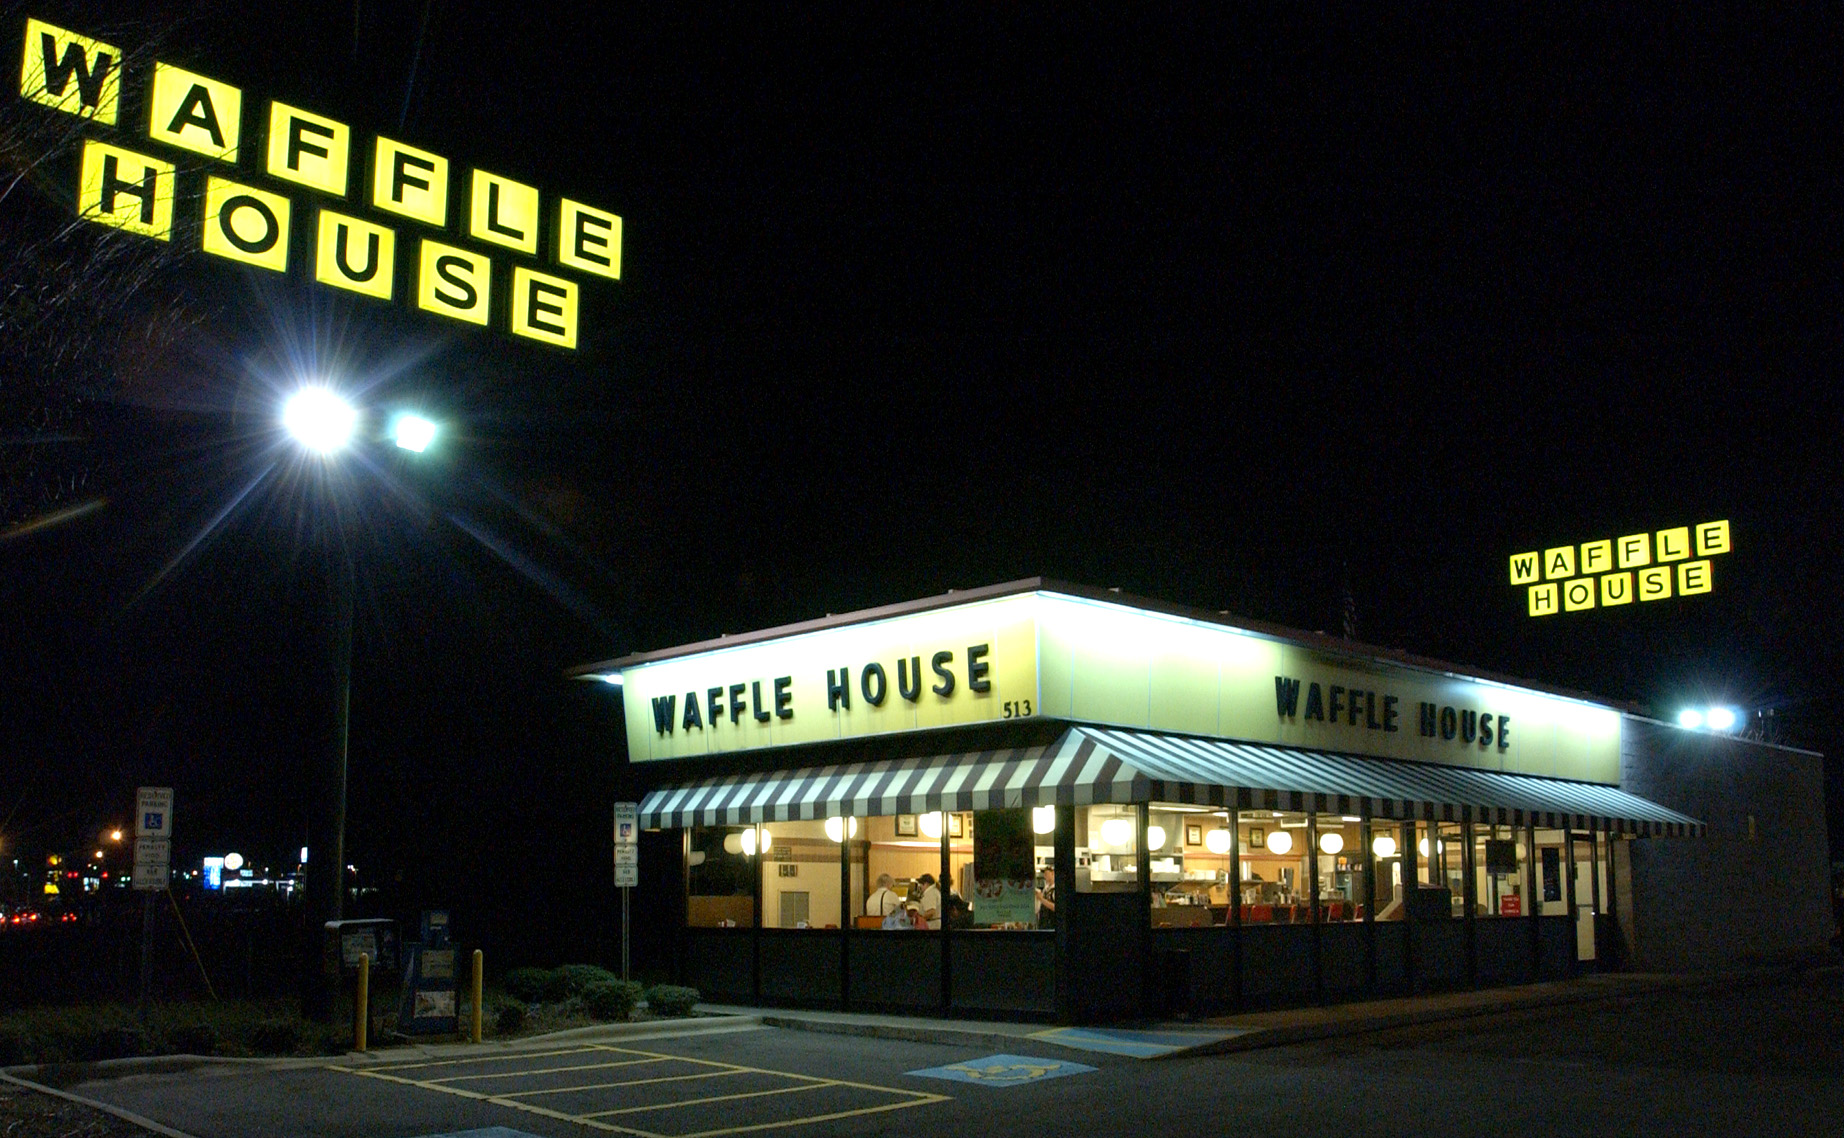 The Waffle House restaurant chain in Winston-Salem, North Carolina